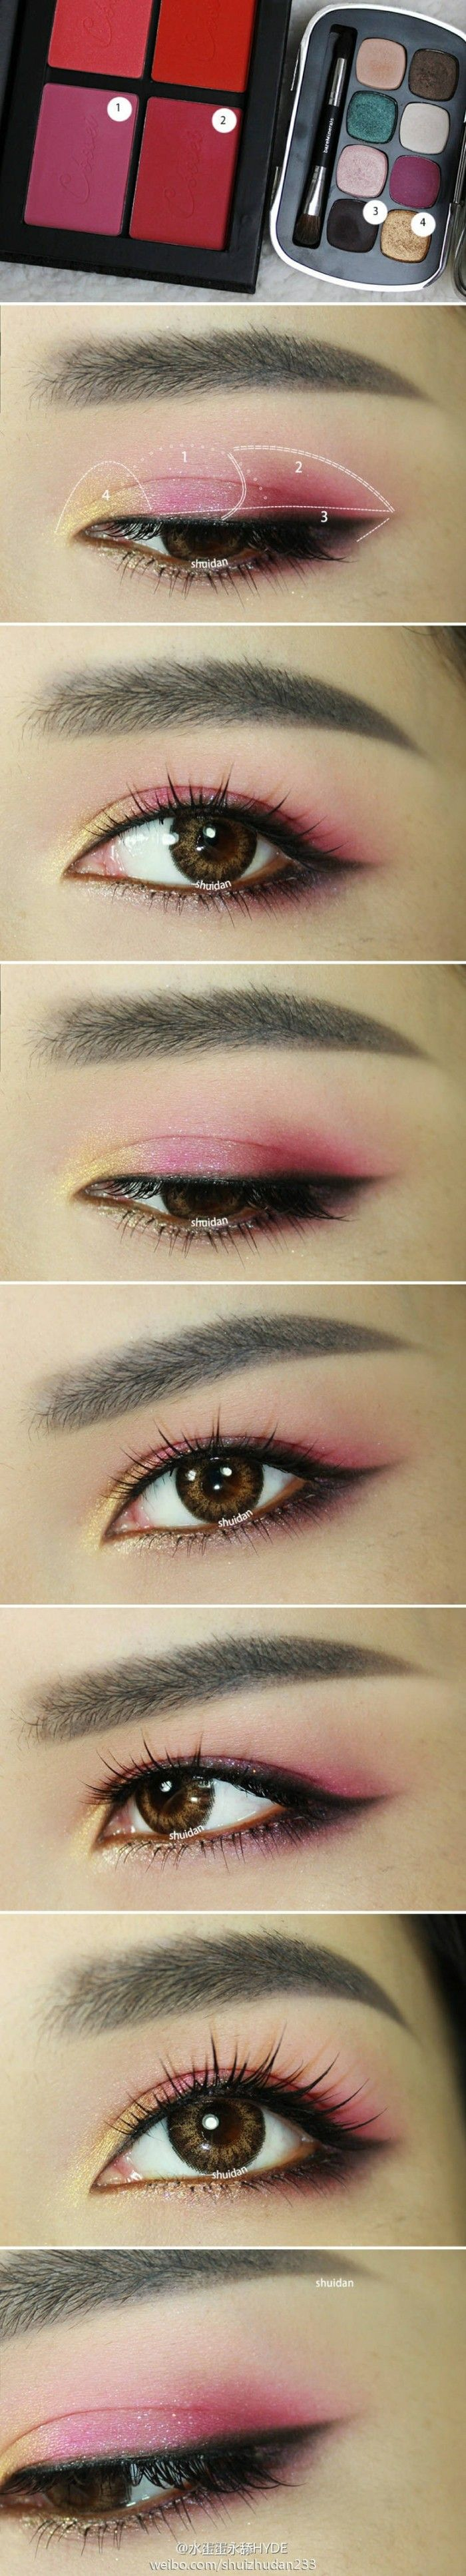 Red/pinkish eyeshadows are all the rage right now in Asian countries, I don't really think American brands on the mid to low-end have really caught up. Use pigmented blushers if you don't have eyeshadows in these colors!